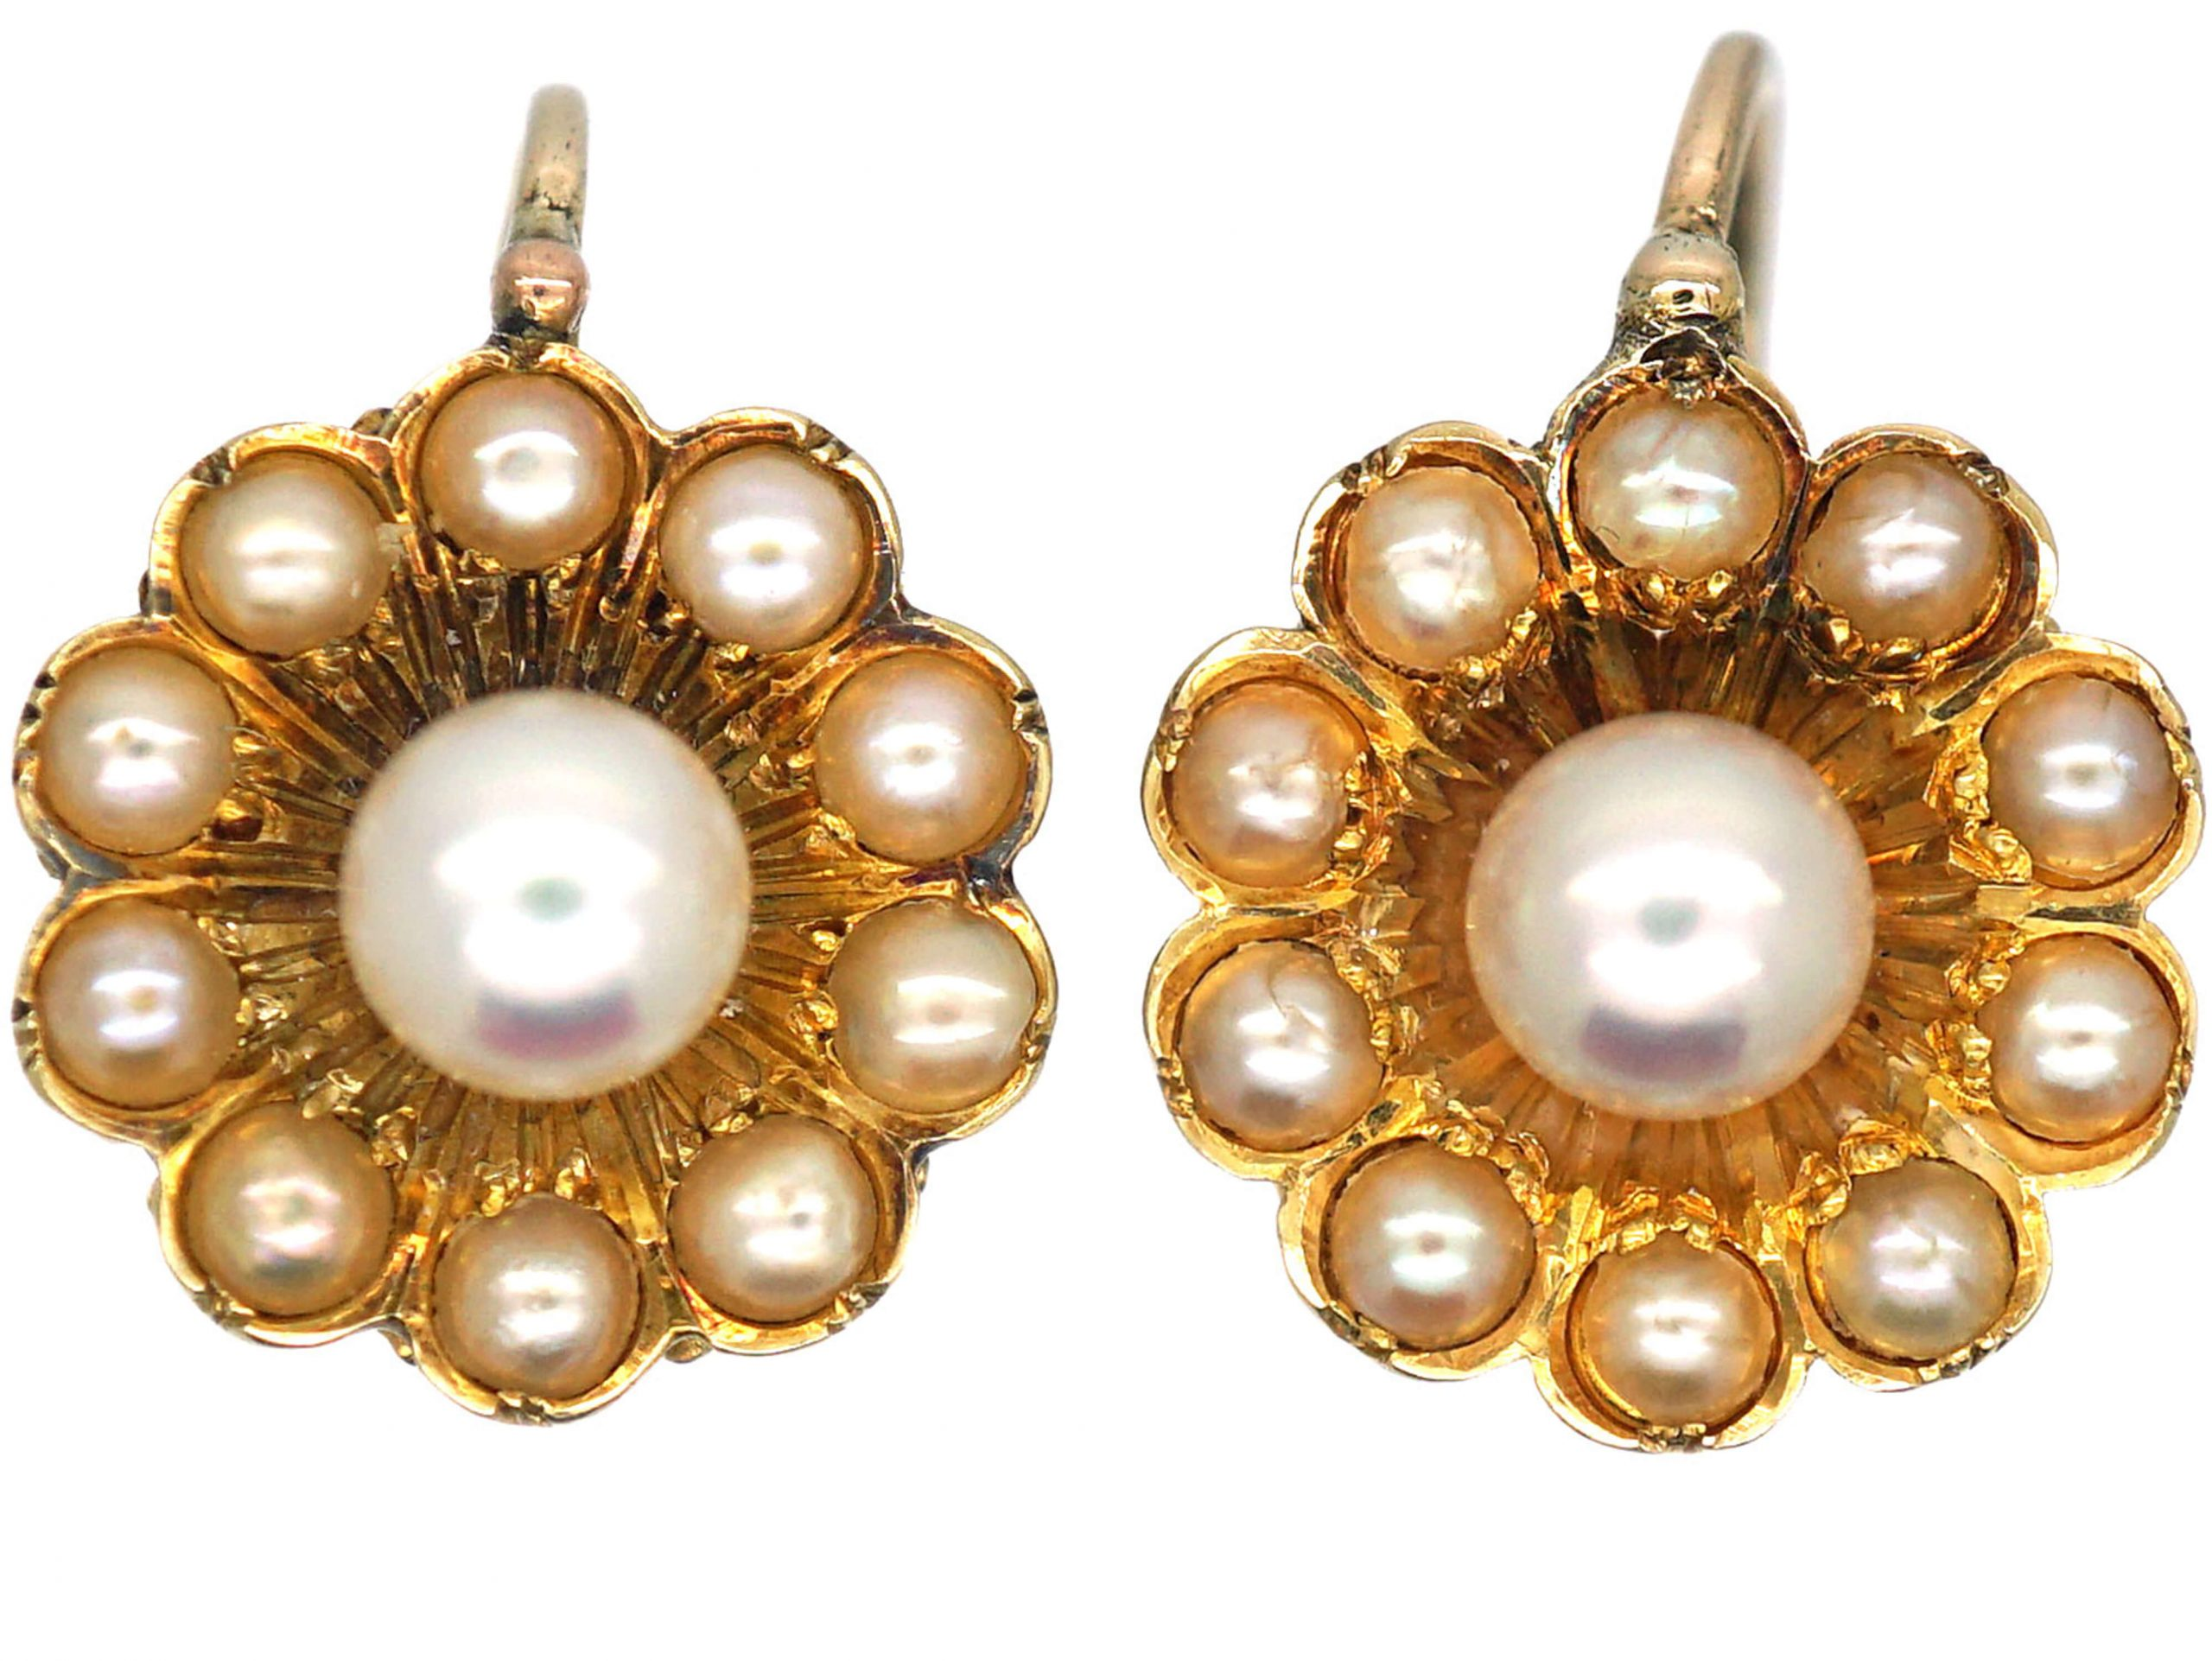 Victorian 15ct Gold Daisy Earrings set with Natural Split Pearls